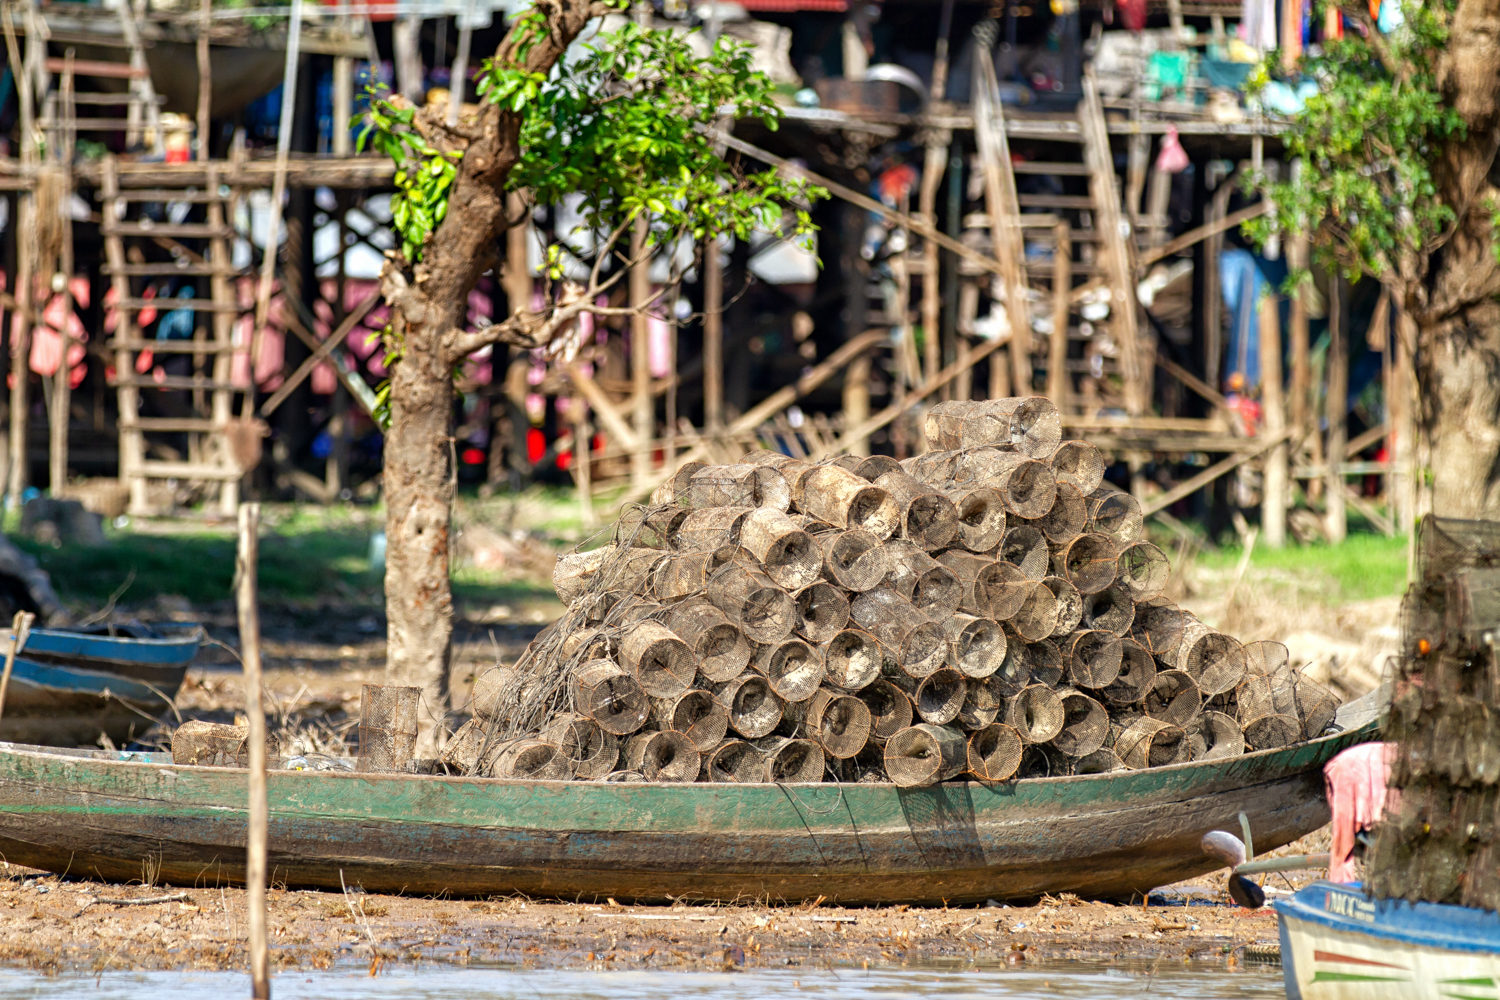 Many small fishing traps on a wood boat in Kampong Phluk on Tonle Sap lake waiting to be used for fishing